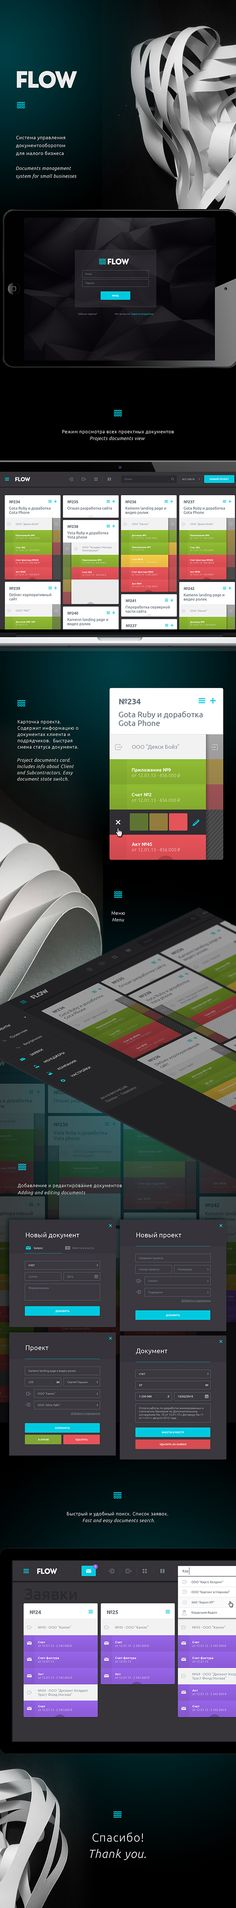 FLOW - Documents management system by Bogdan Kazakov, via Behance